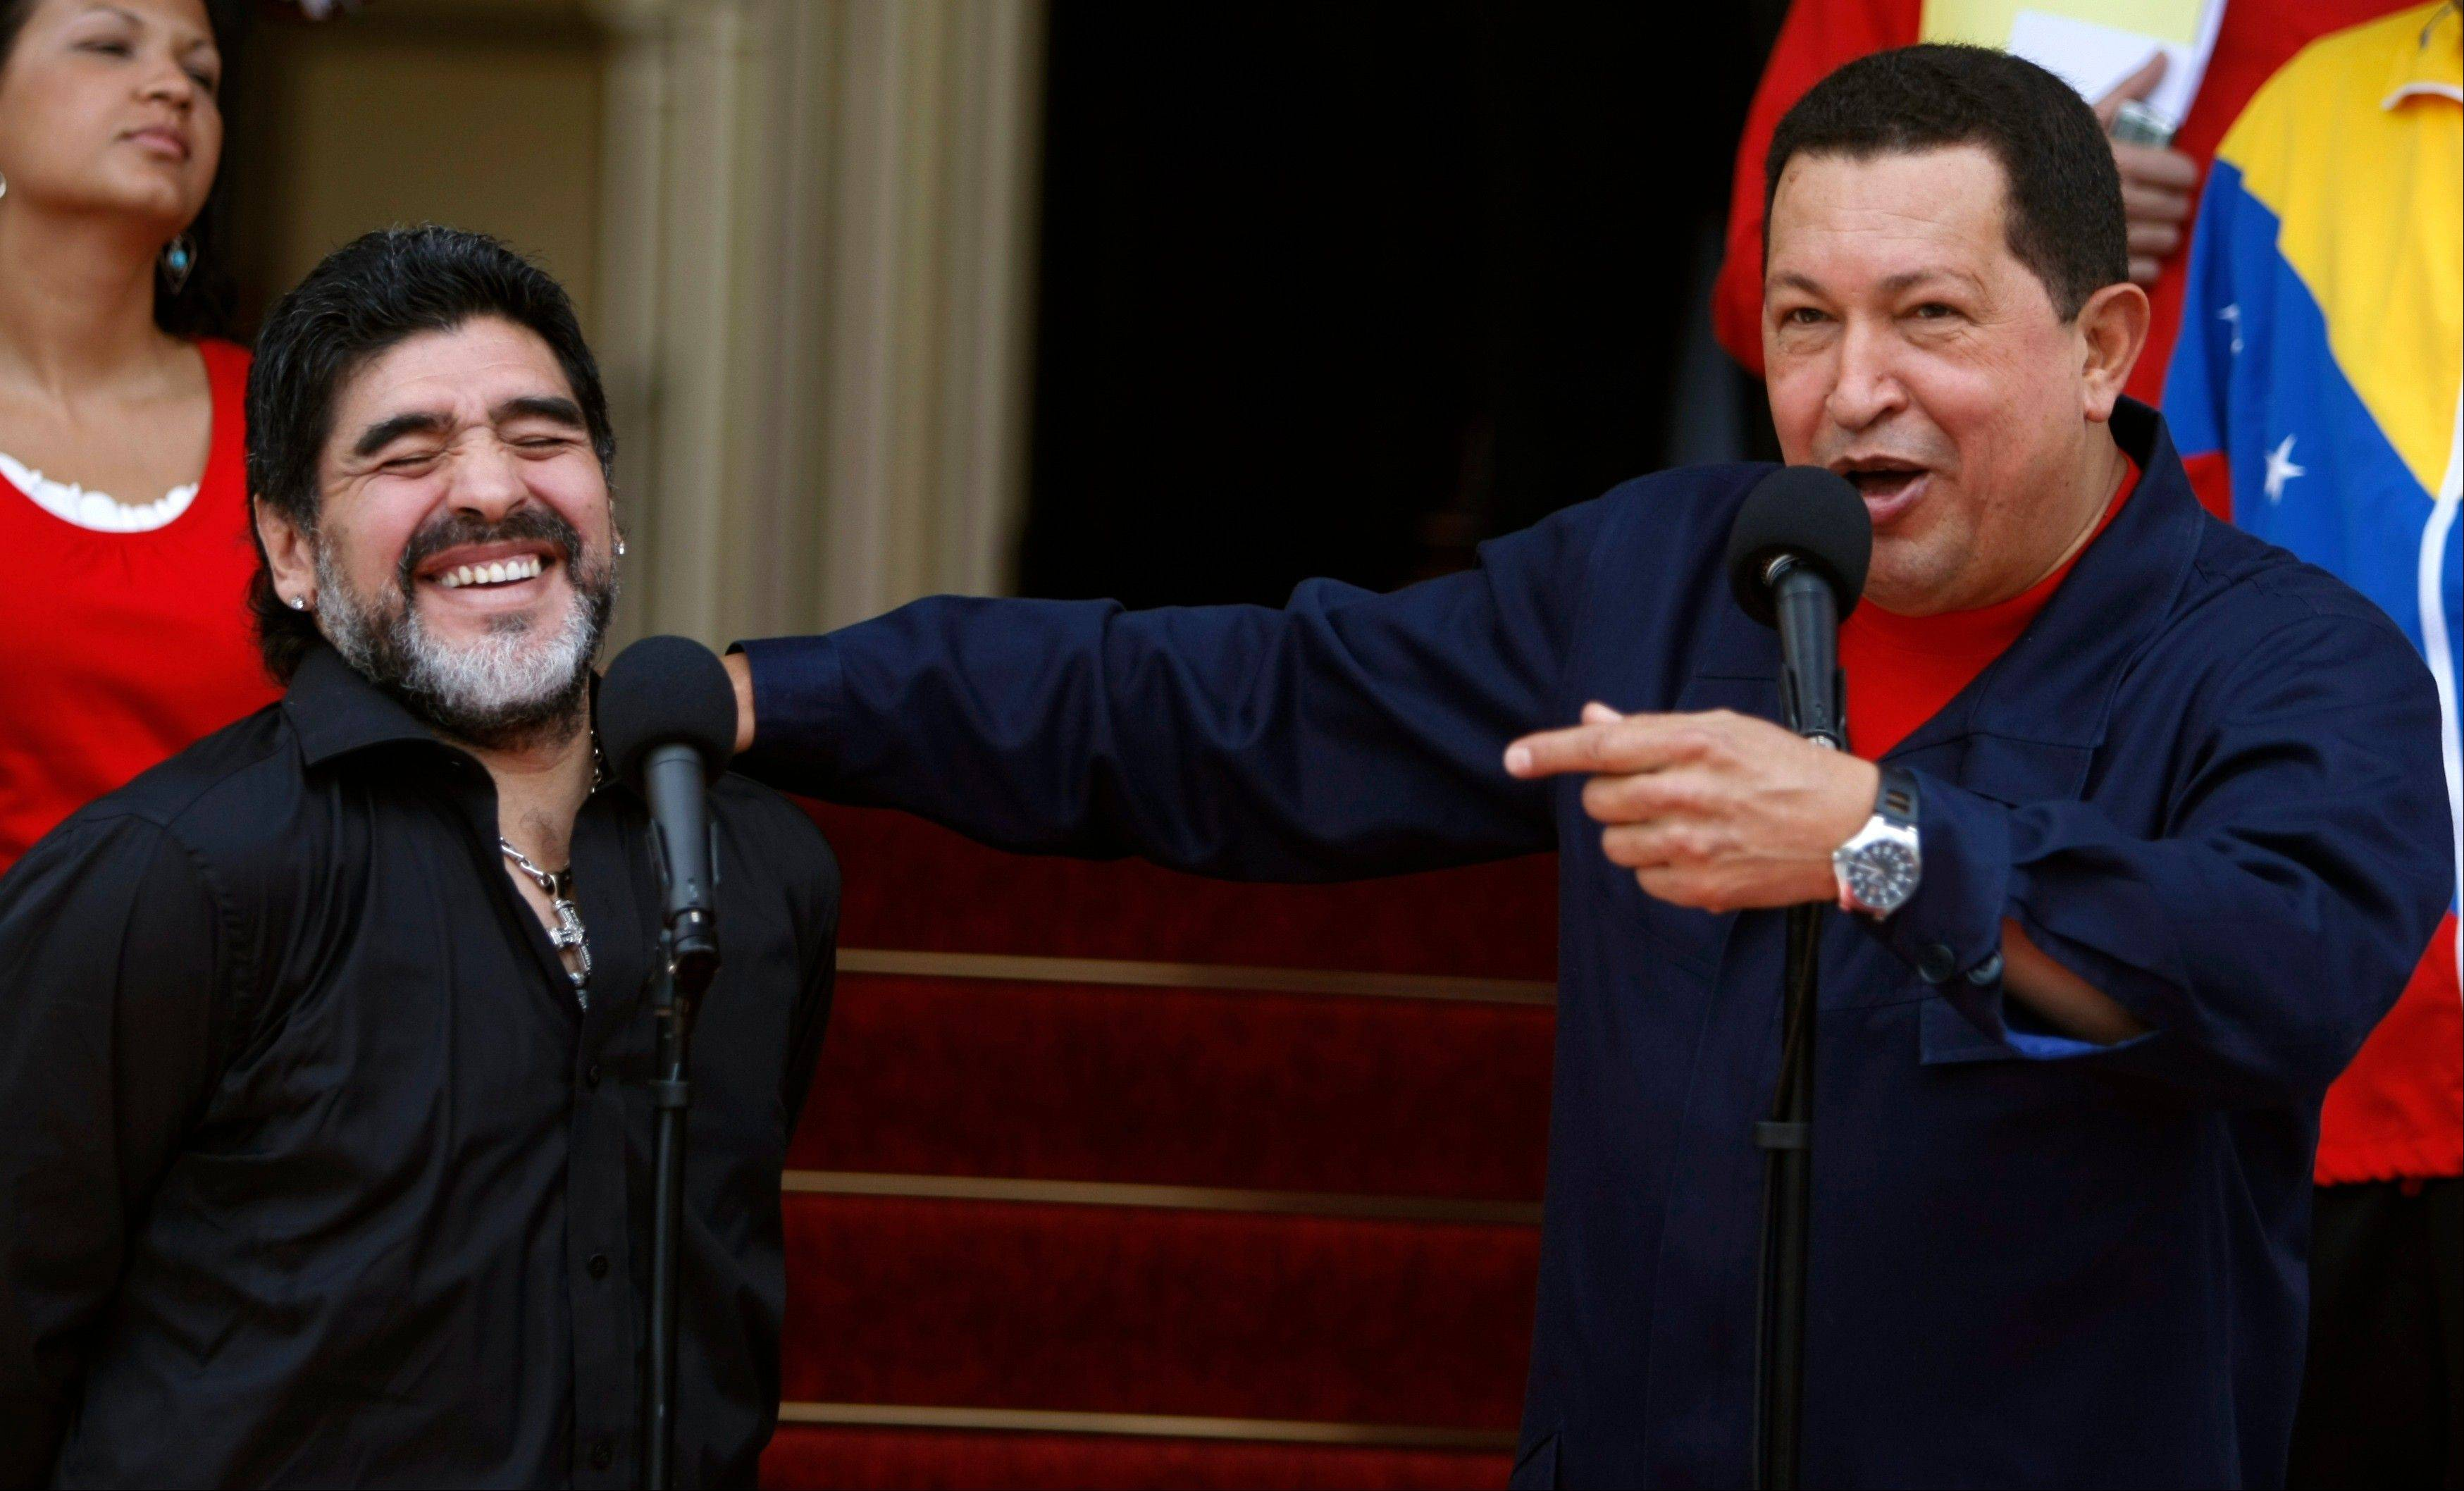 In this July 22, 2010, file photo, Venezuela's President Hugo Chavez, right, speaks next to Argentina's national soccer team coach Diego Armando Maradona upon Maradona's arrival to Miraflores presidential palace in Caracas, Venezuela.